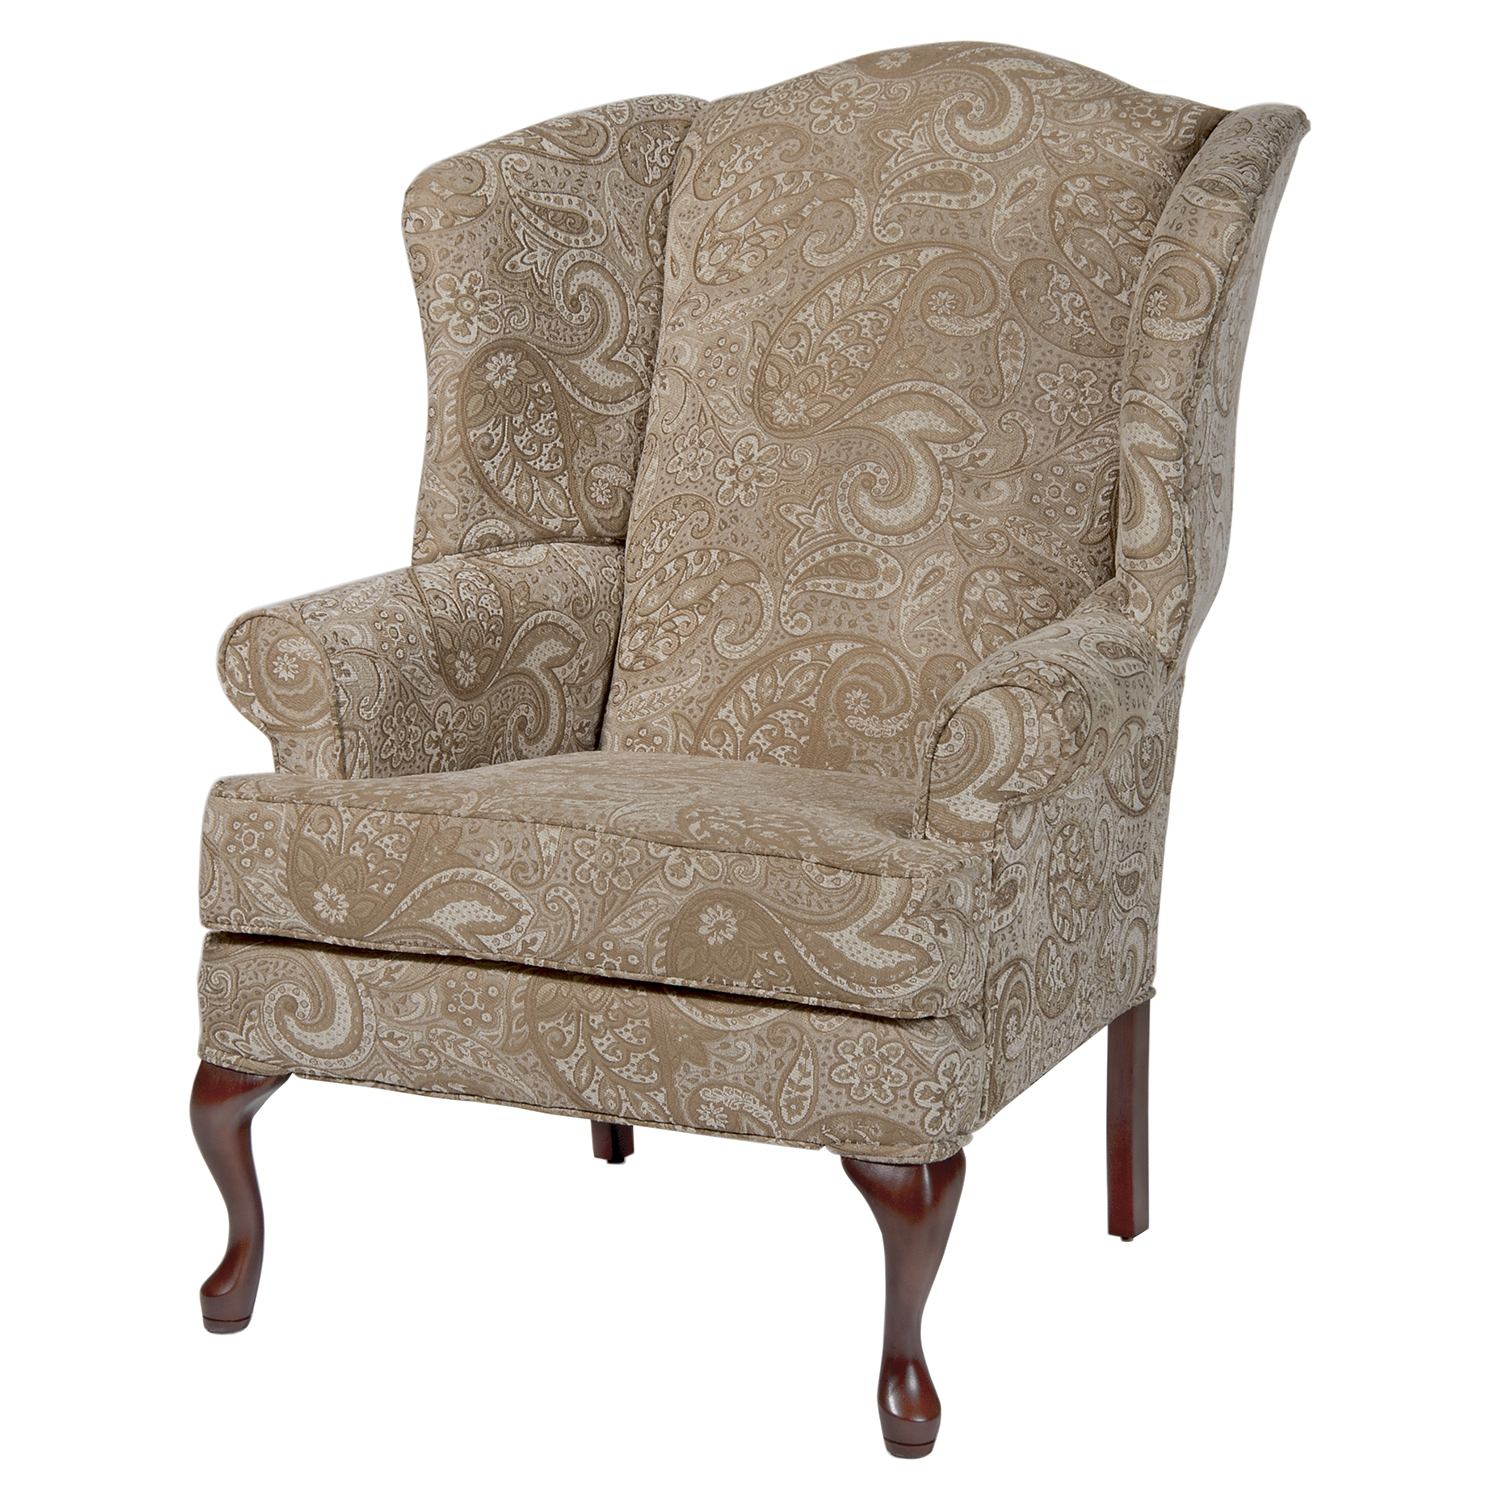 Paisley Wingback Chair - Cream, Cherry